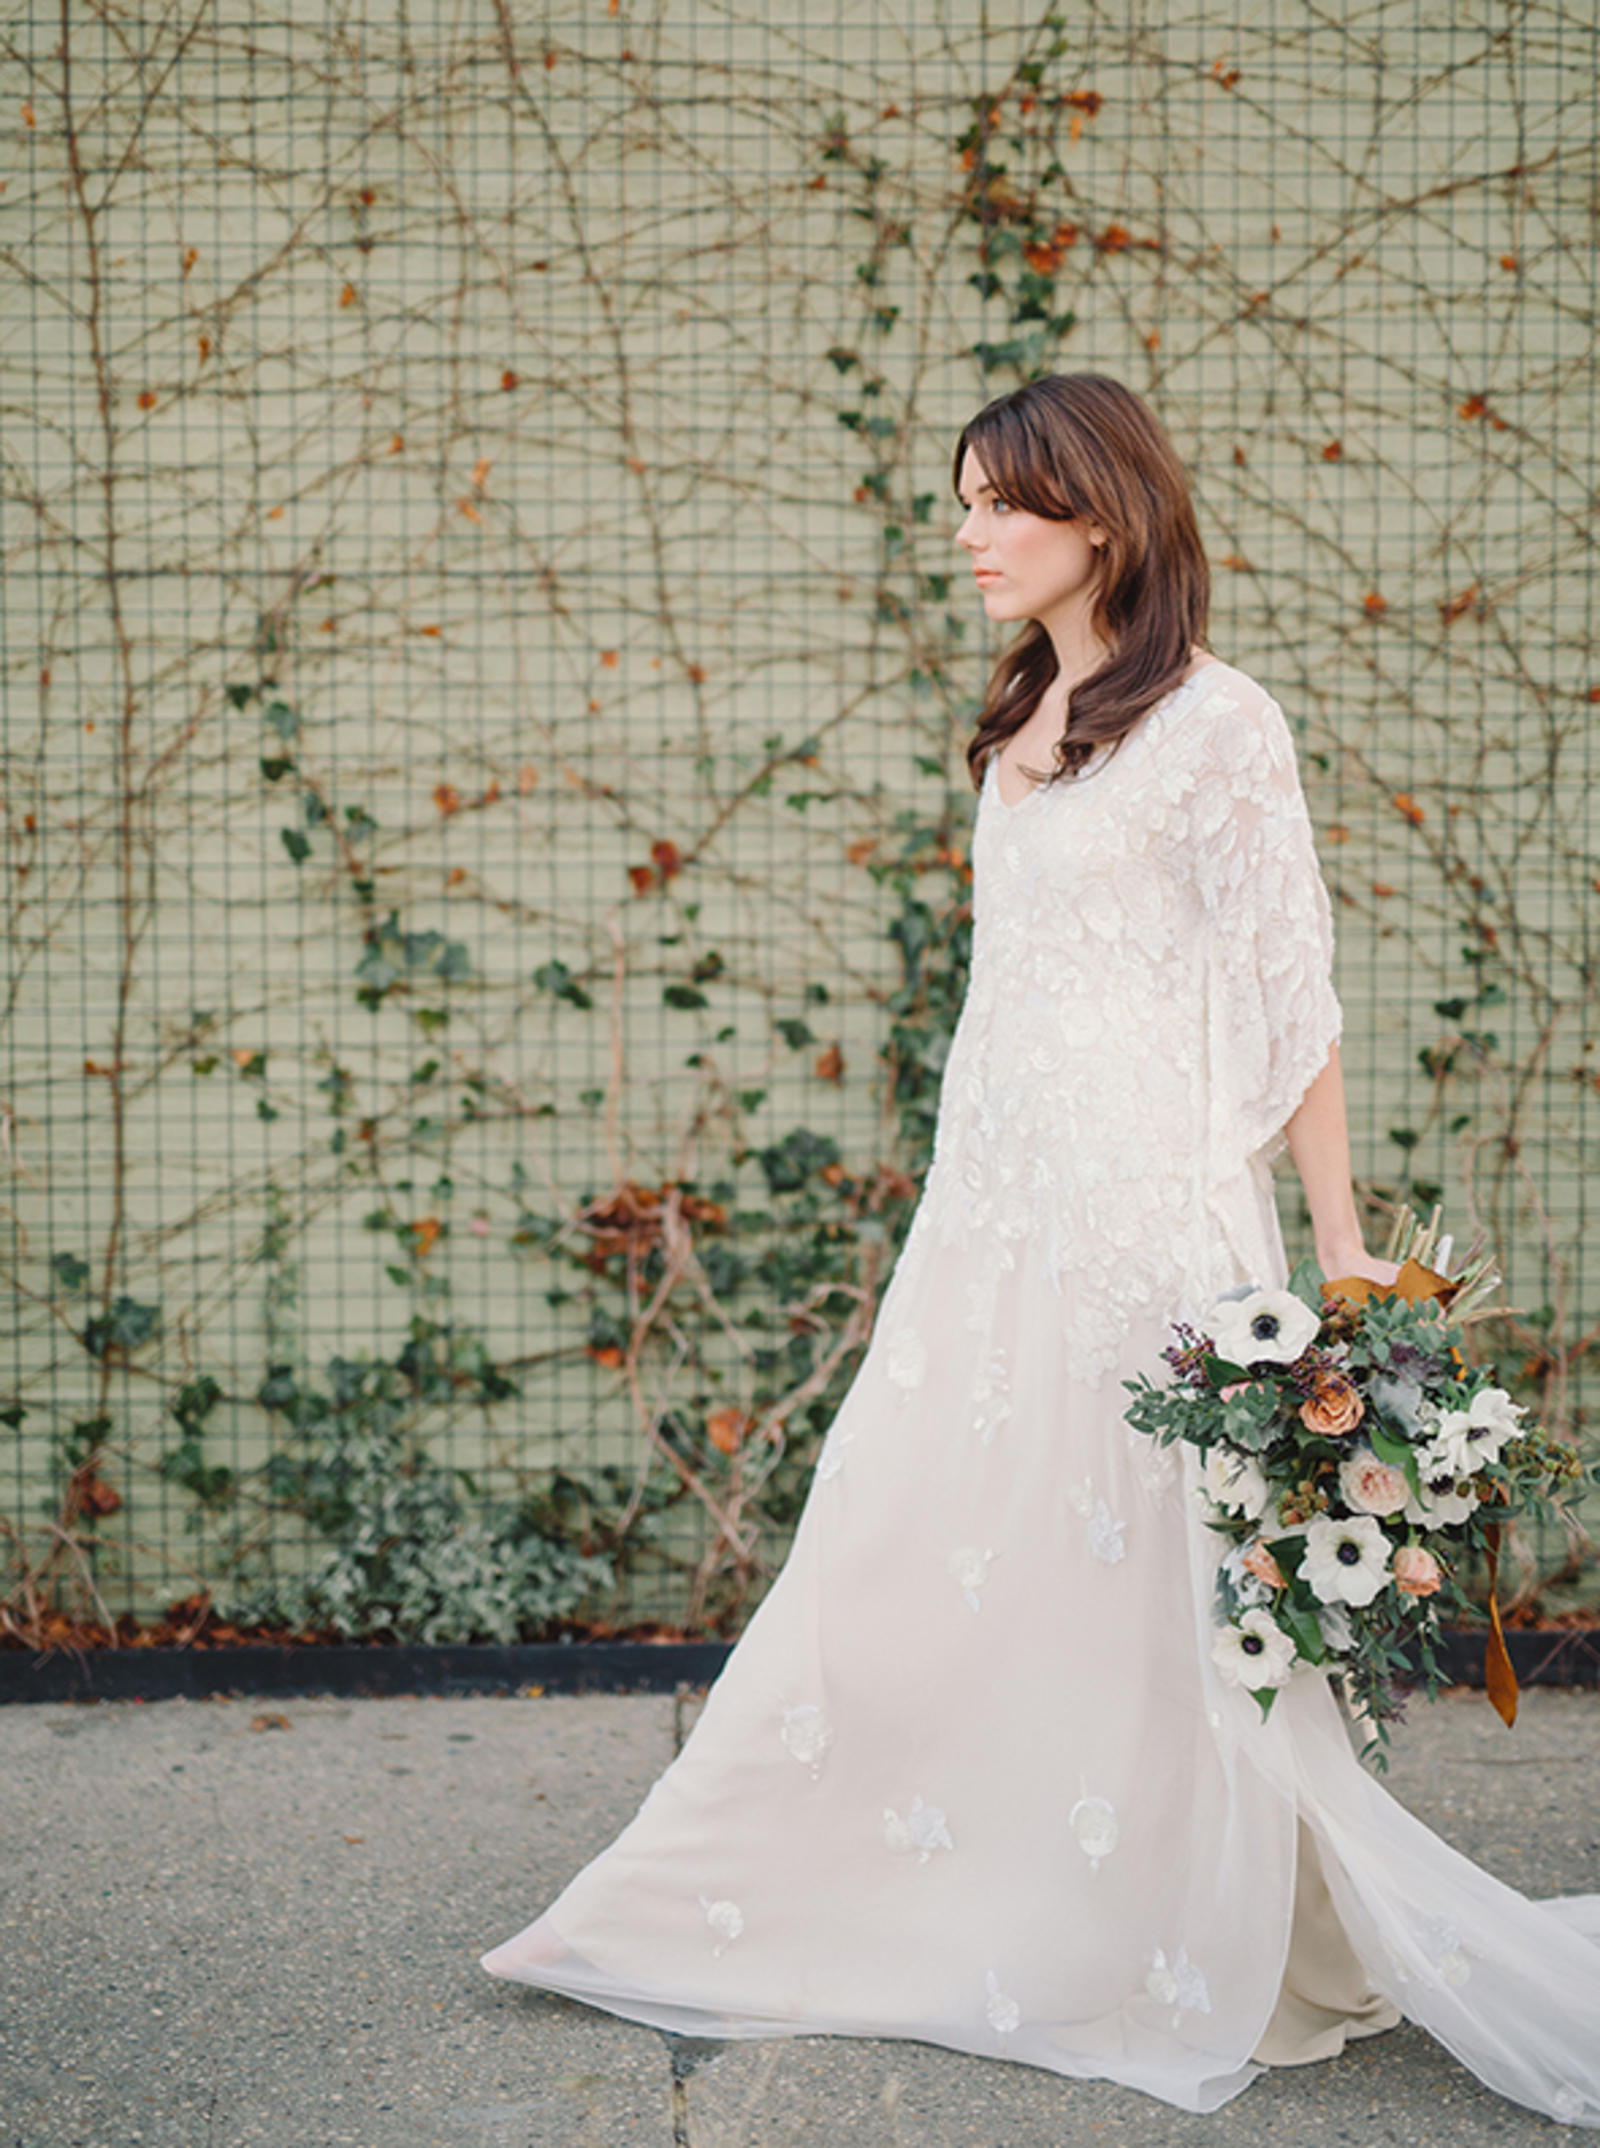 Editorial Photography | Atlanta, GA | A model bride walks, in profile, holding a large floral bouquet.